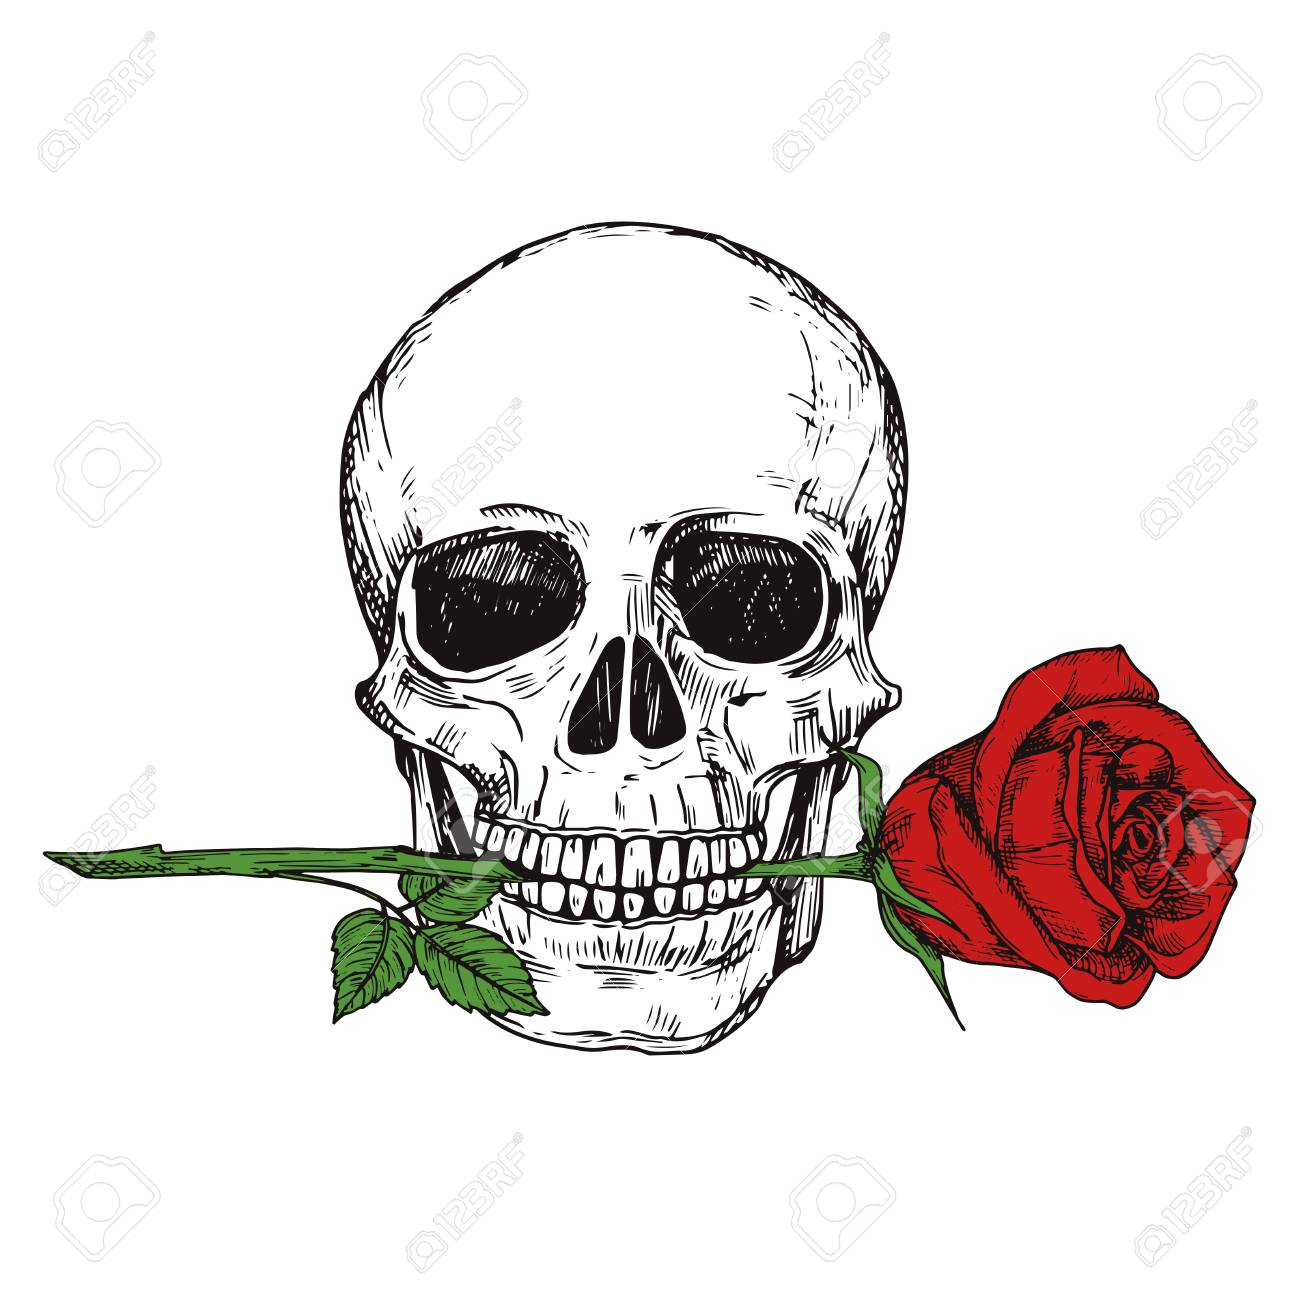 photograph about Skull Printable titled Hand drawn pleased human skull with purple rose - sketched skull printable..